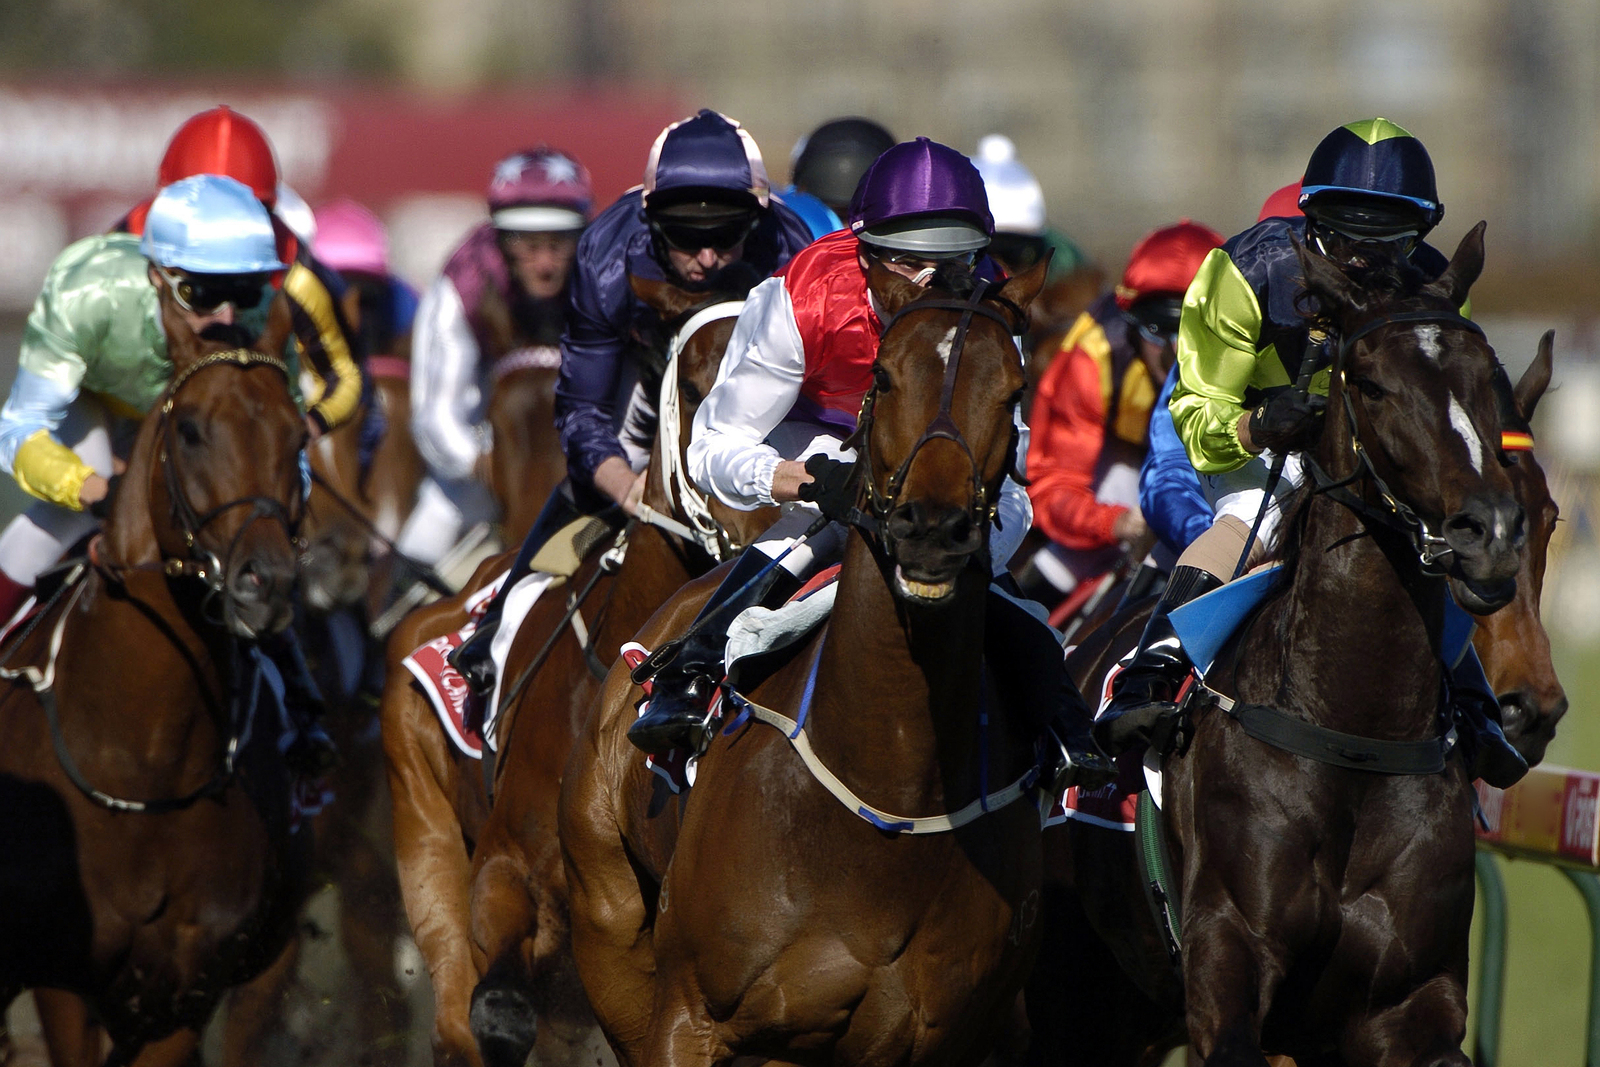 Action of a bunch of race horses during a race head-on.